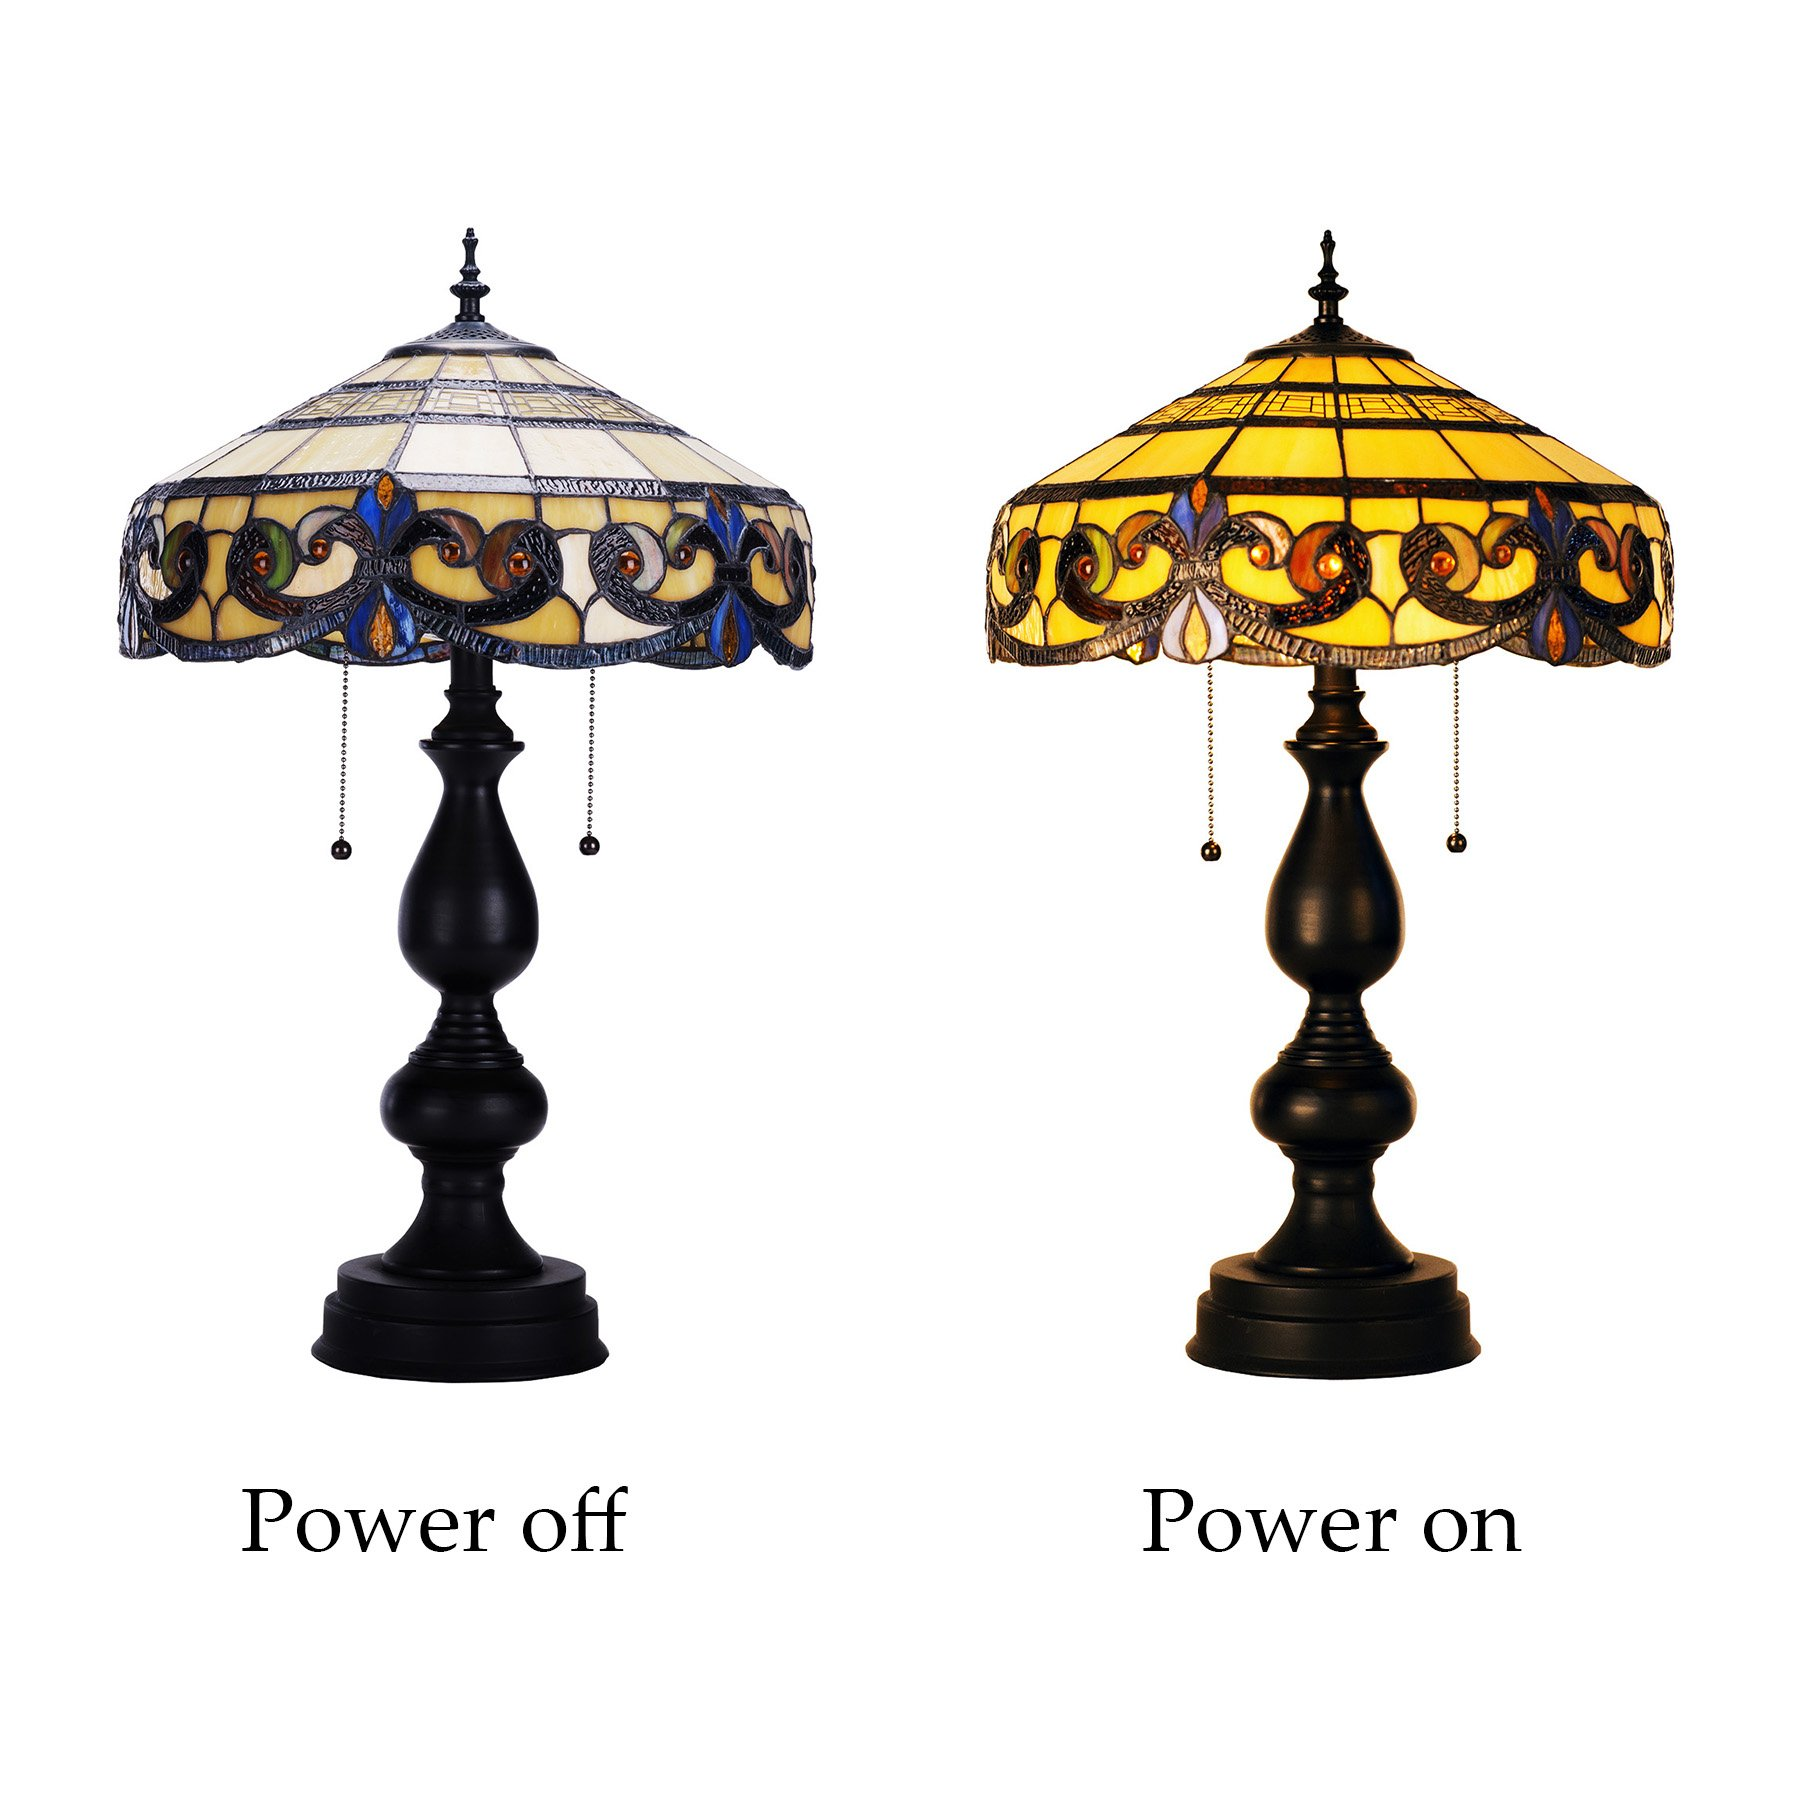 CO-Z Tiffany Style Table Lamps, 2-Light Victorian Desk Lamp with 16 Inches Stained Glass Shade, 25.5 Inches Height by CO-Z (Image #4)